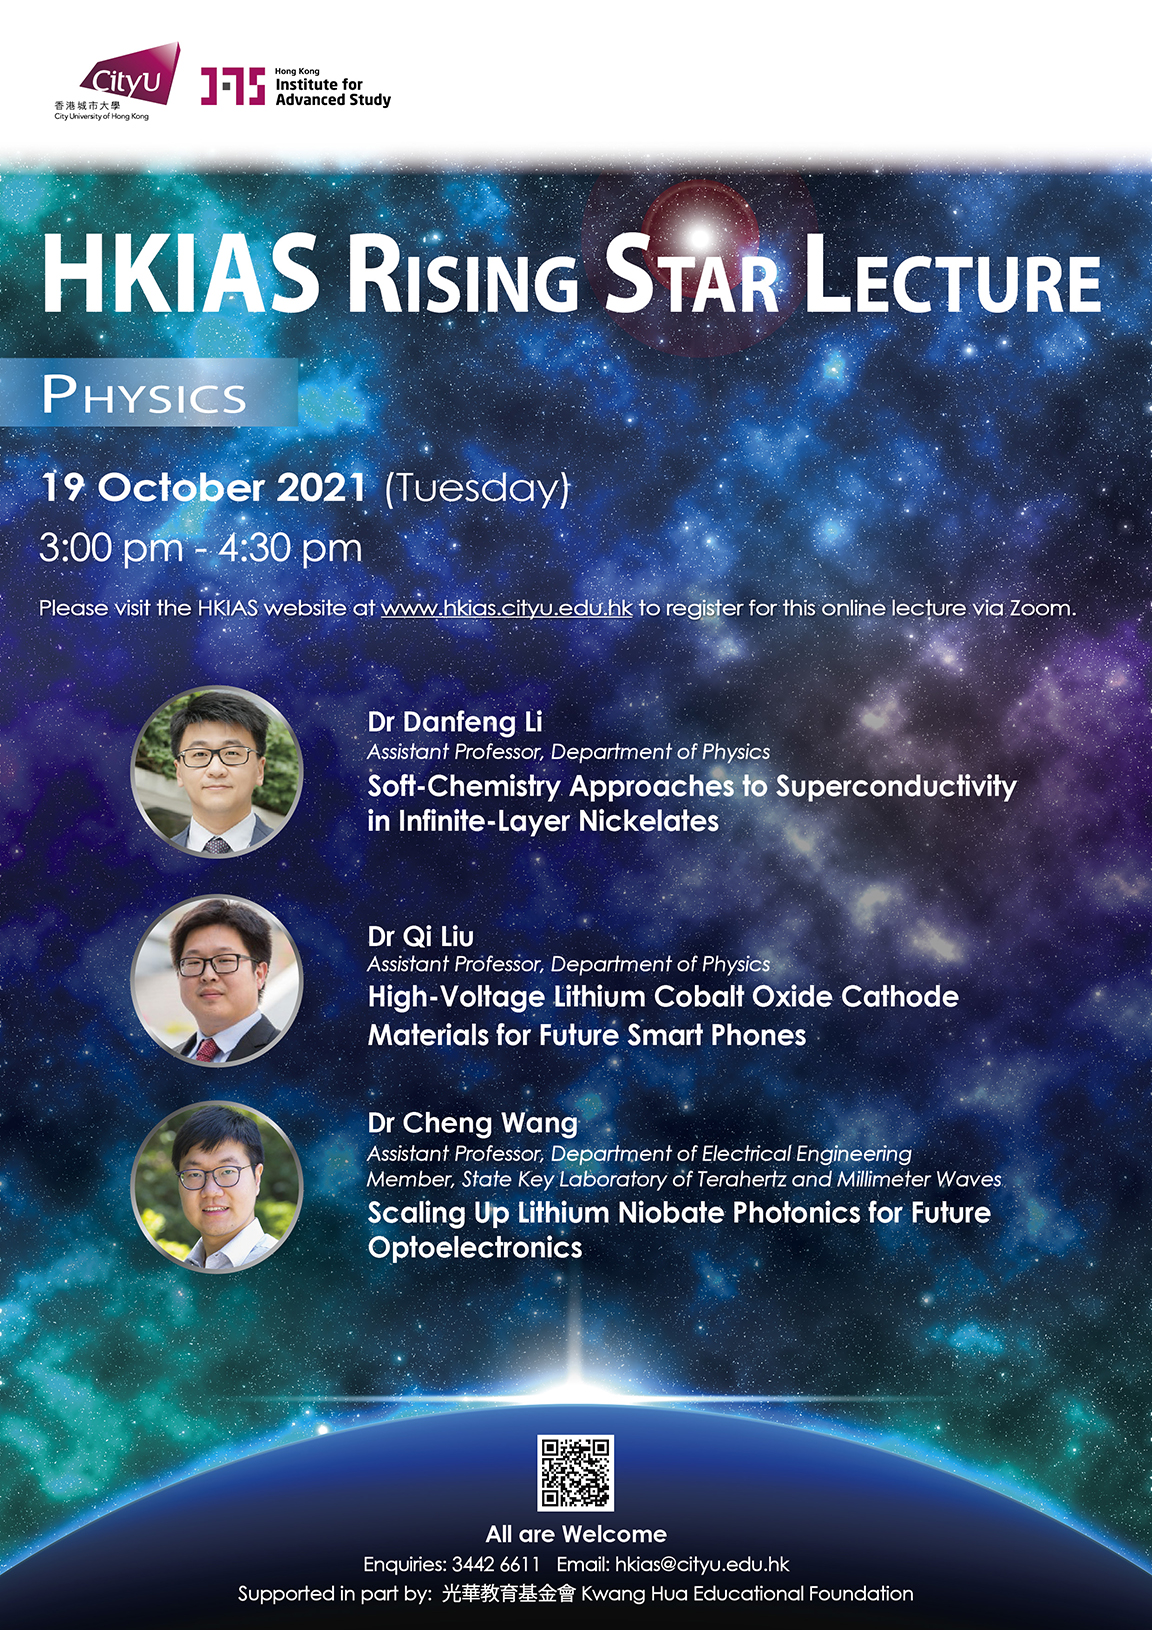 HKIAS Rising Star Lecture